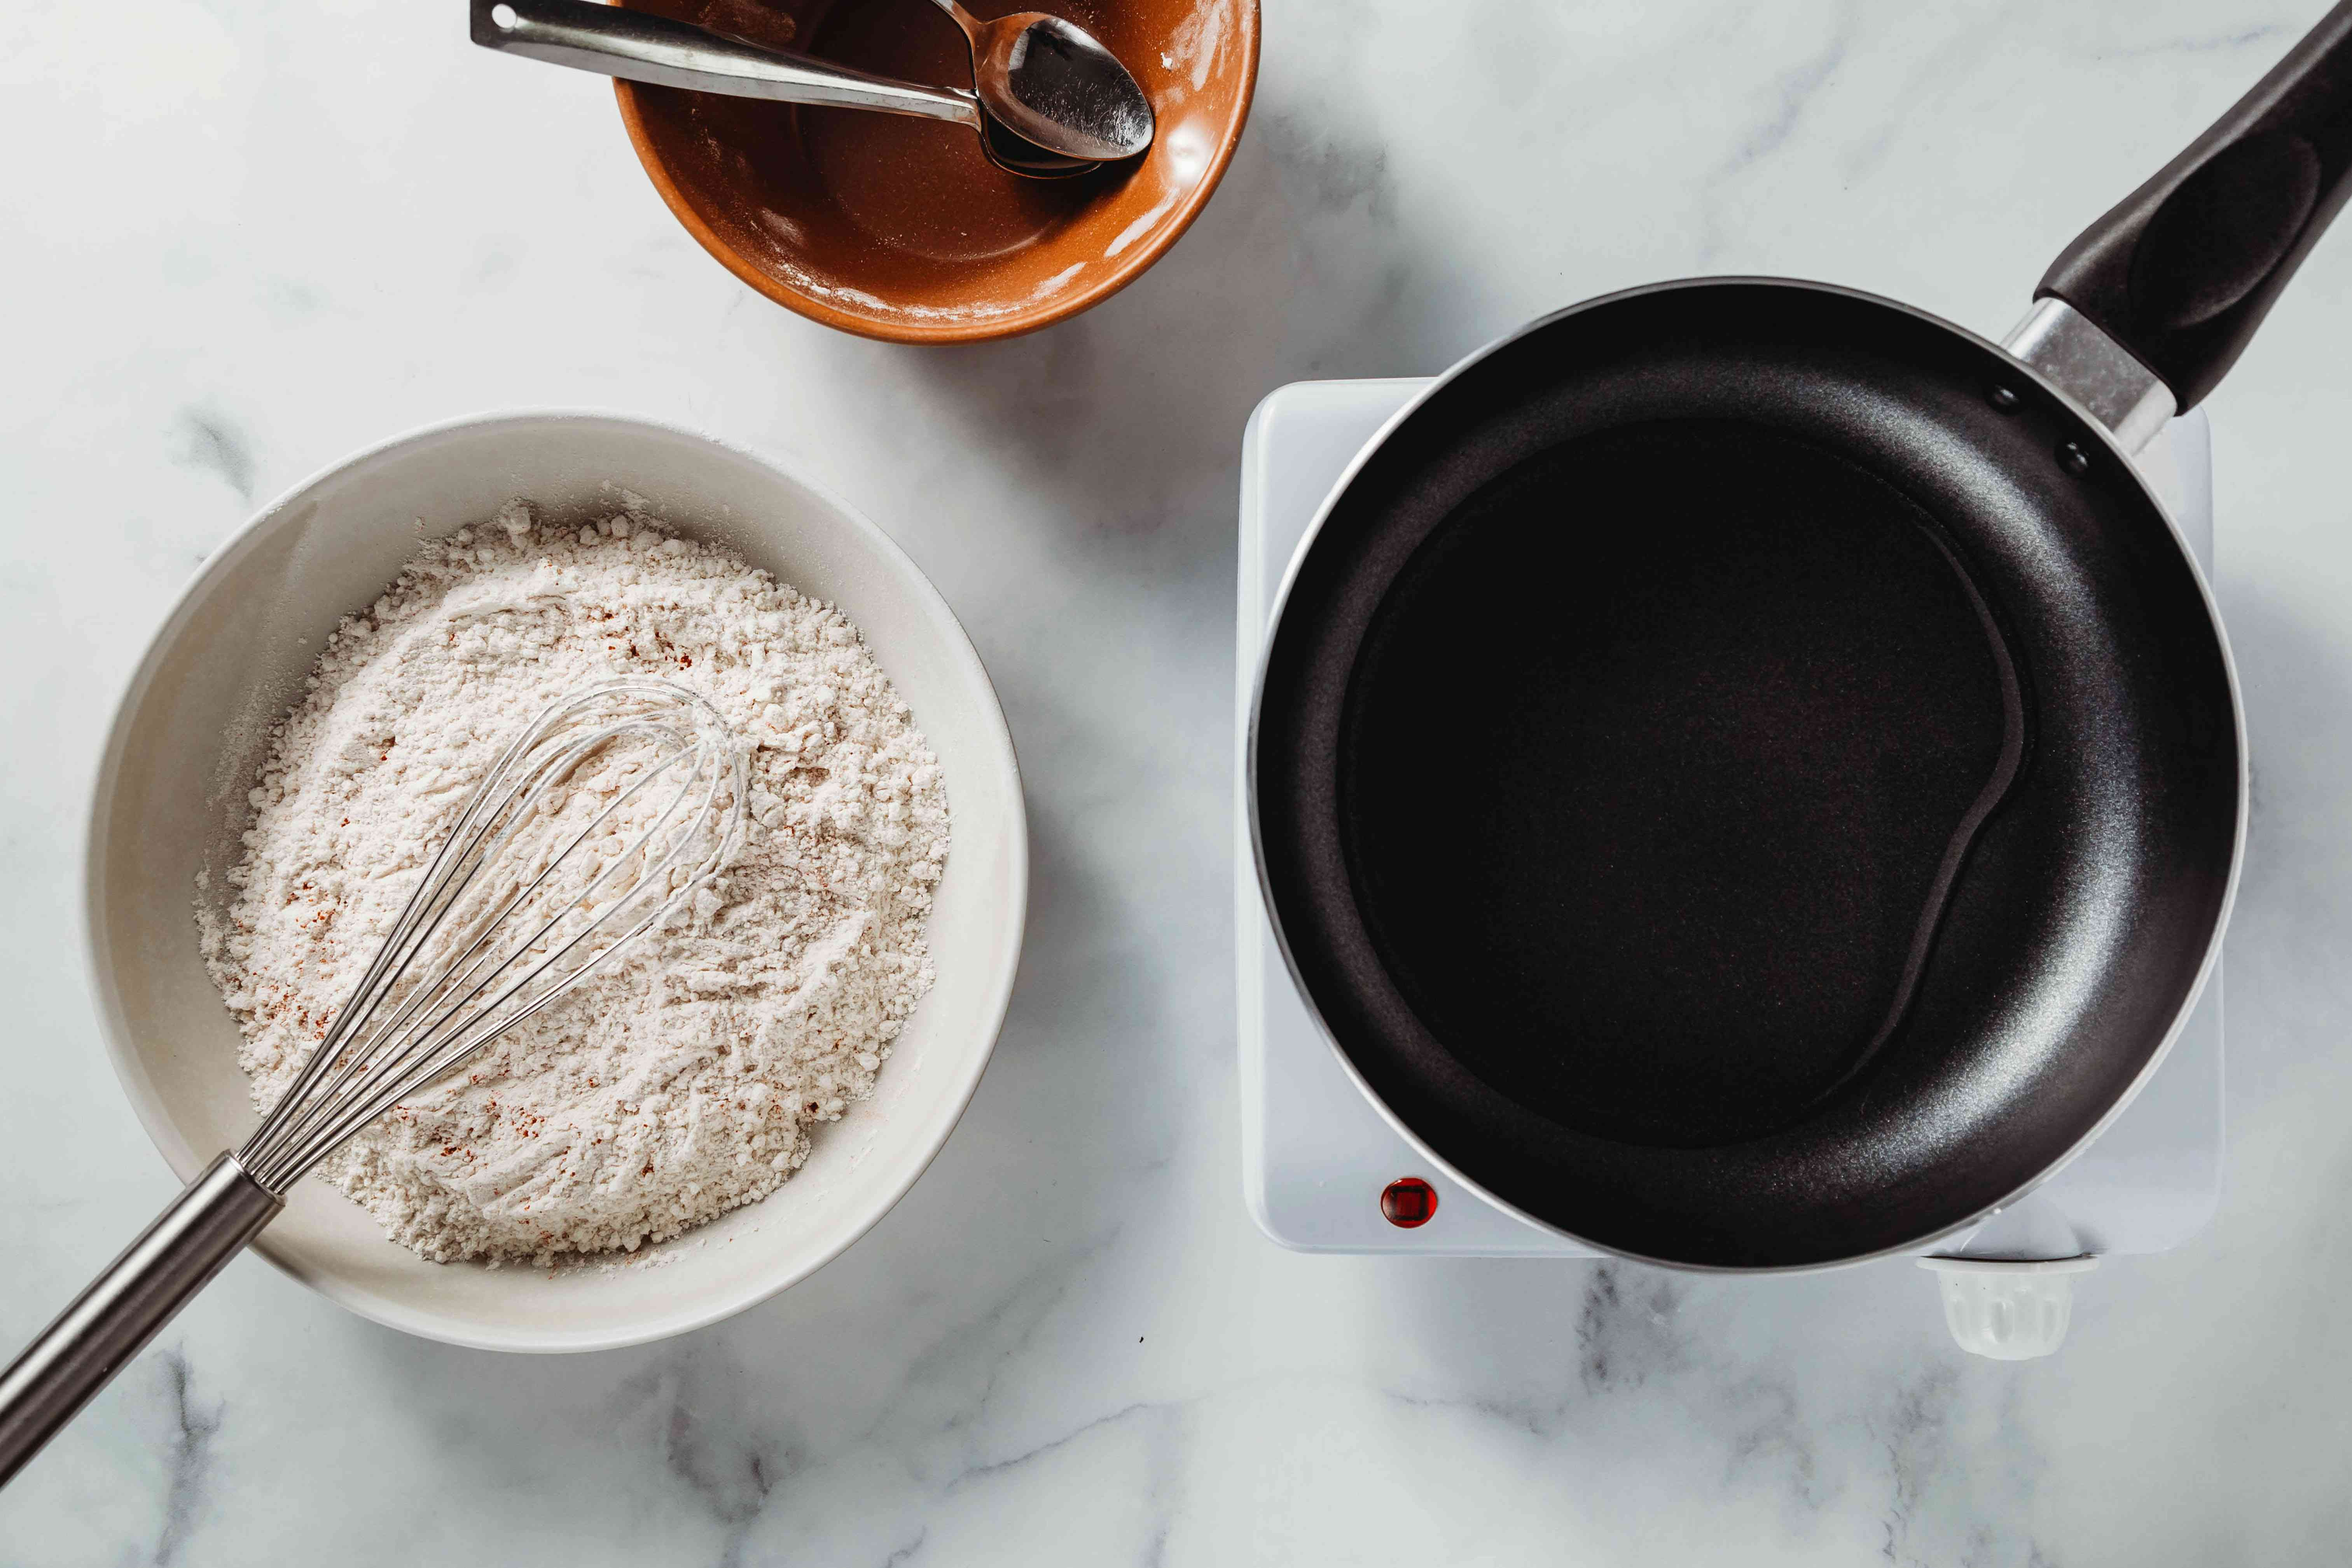 in a shallow dish, mix flour, salt, and paprika together